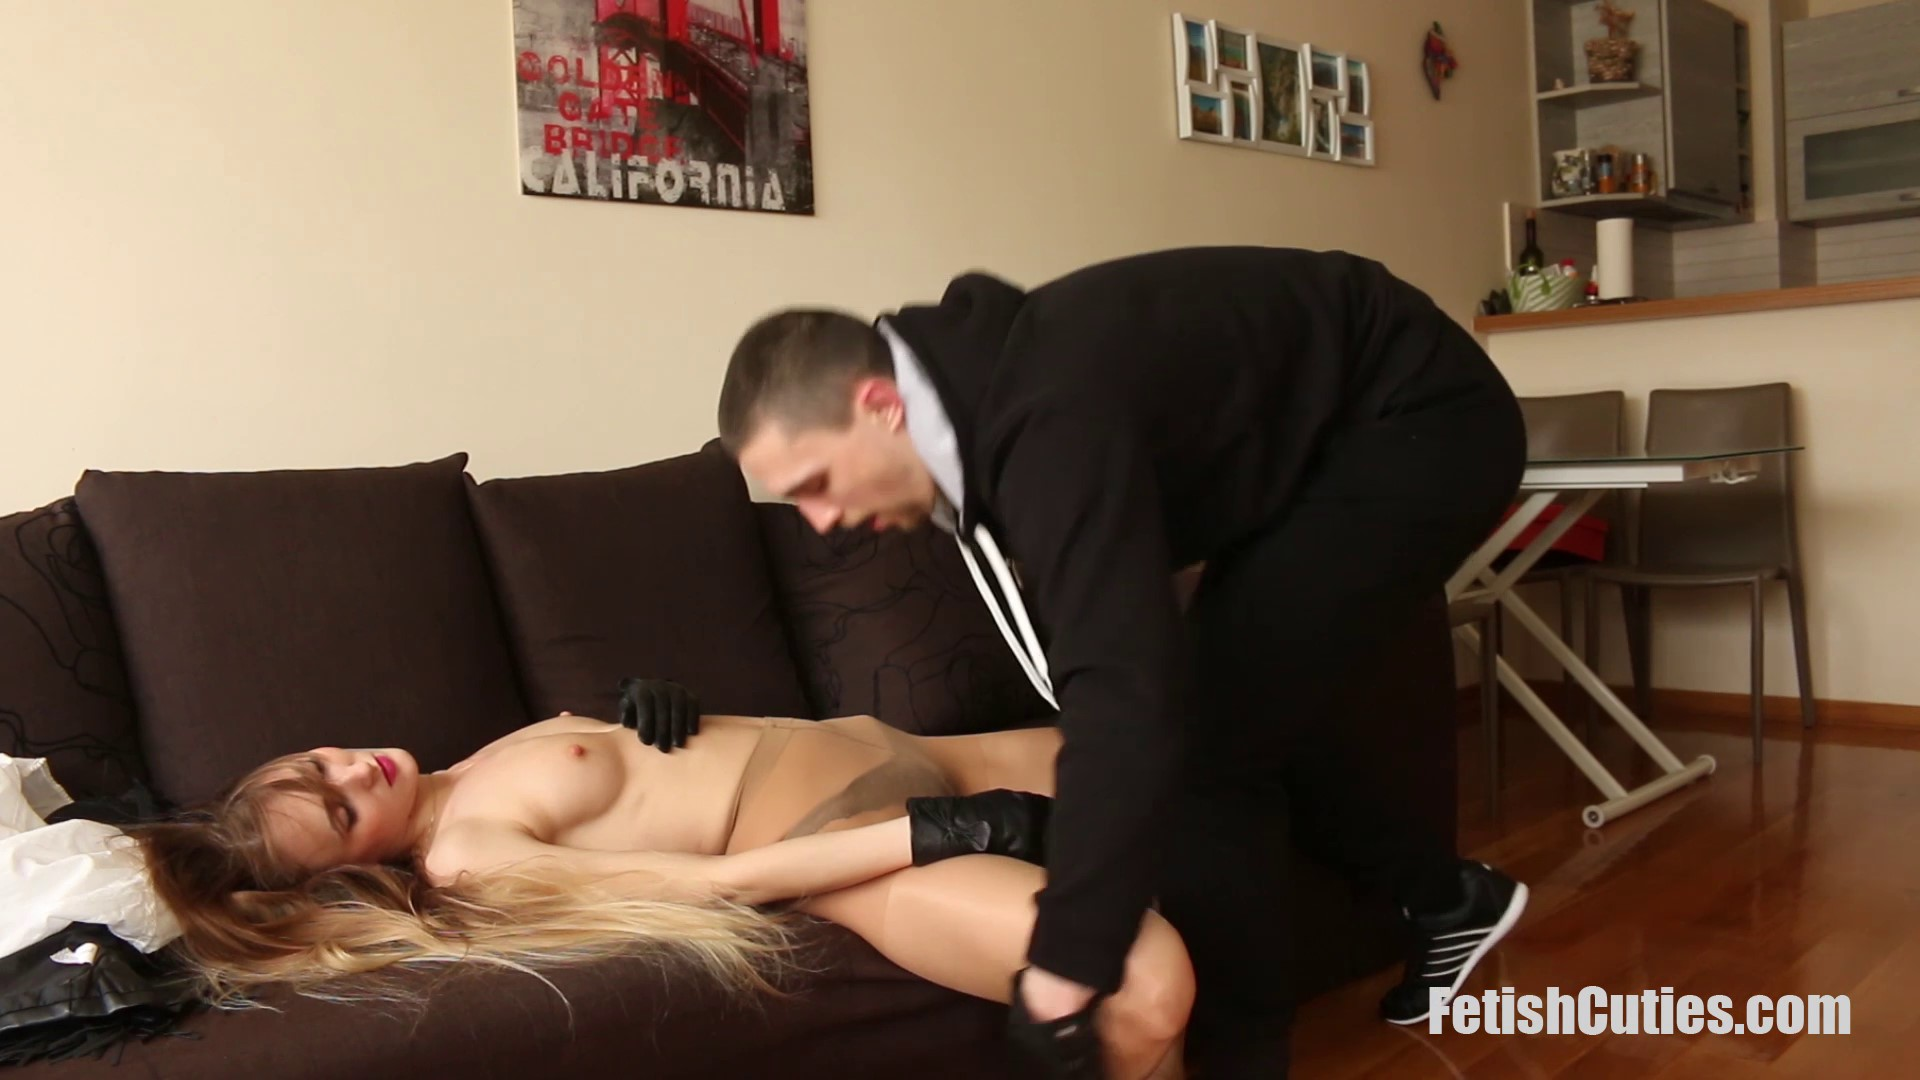 FETISH CUTIES Unsuspectedly Caught, Neck Chopped And Used For Pleasure (65)